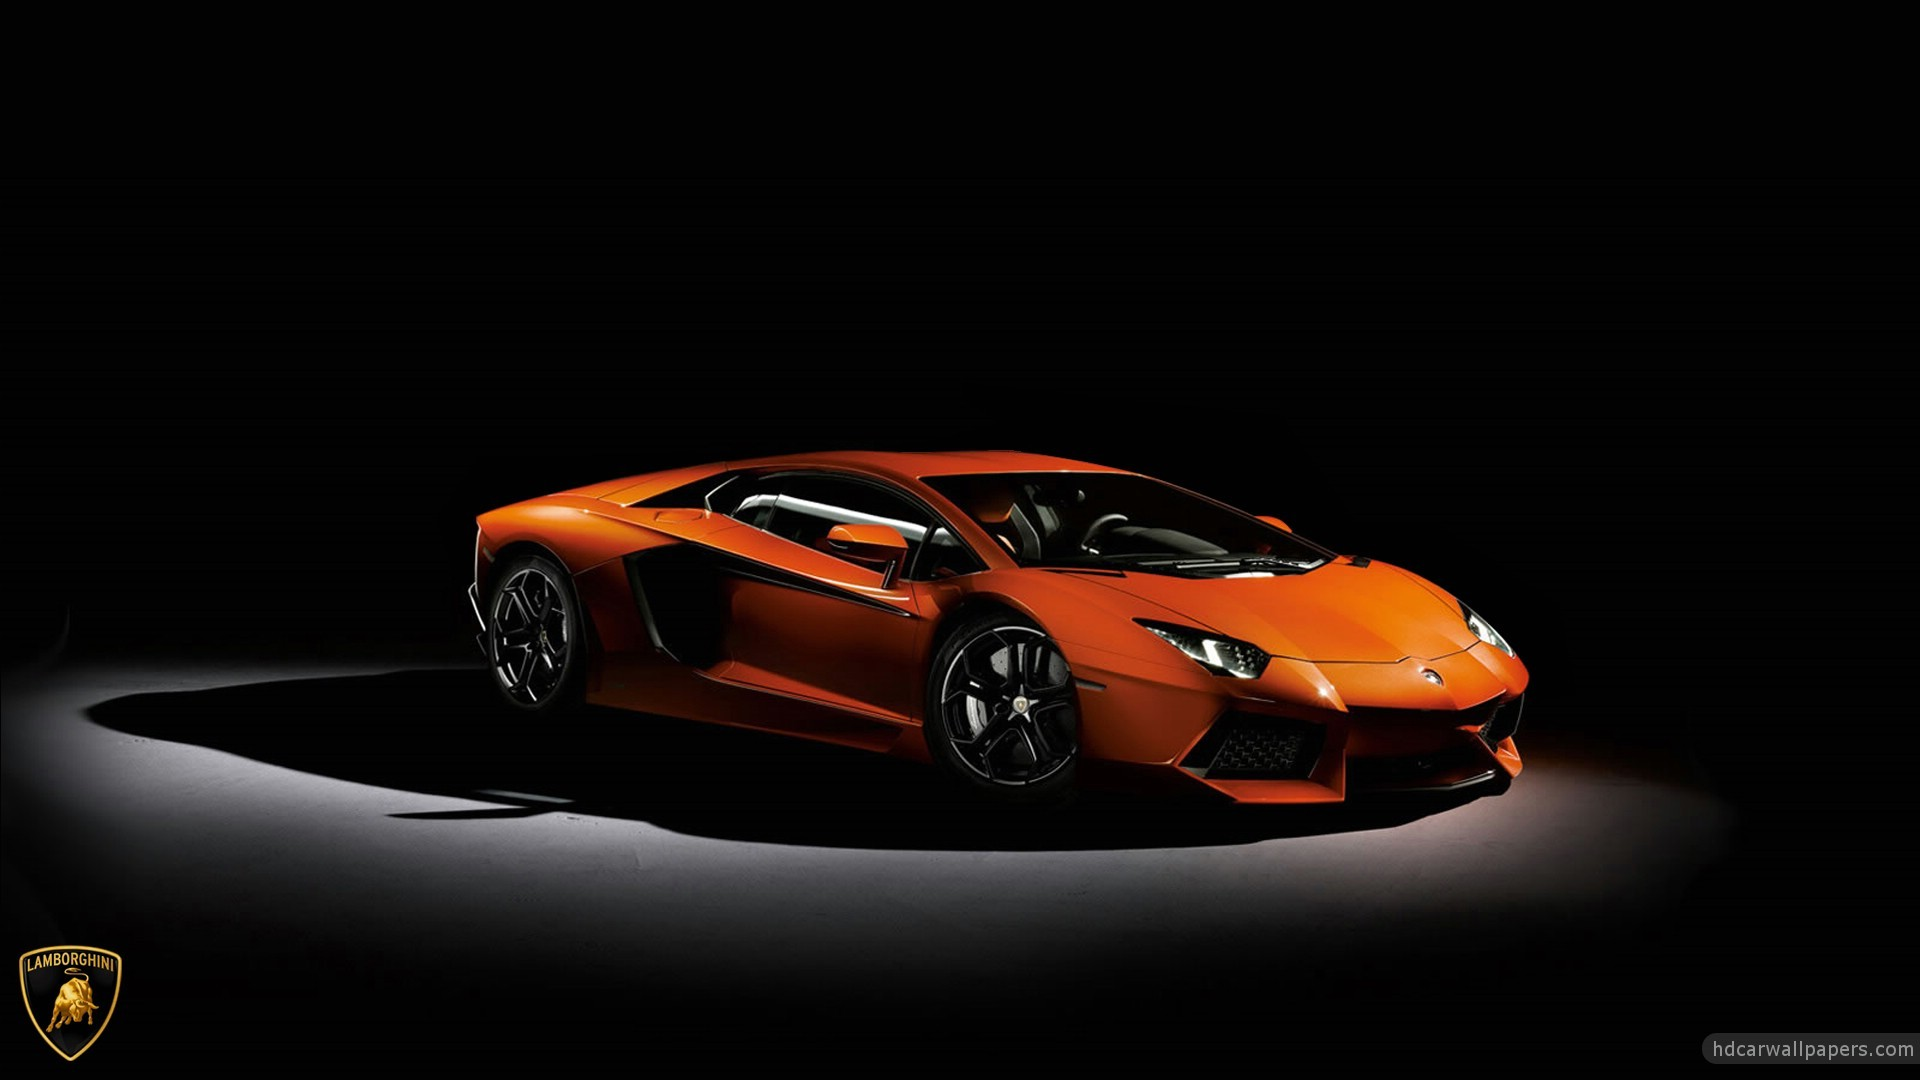 1920x1080 Lamborghini Aventador HD Wallpaper | HD Car Wallpapers